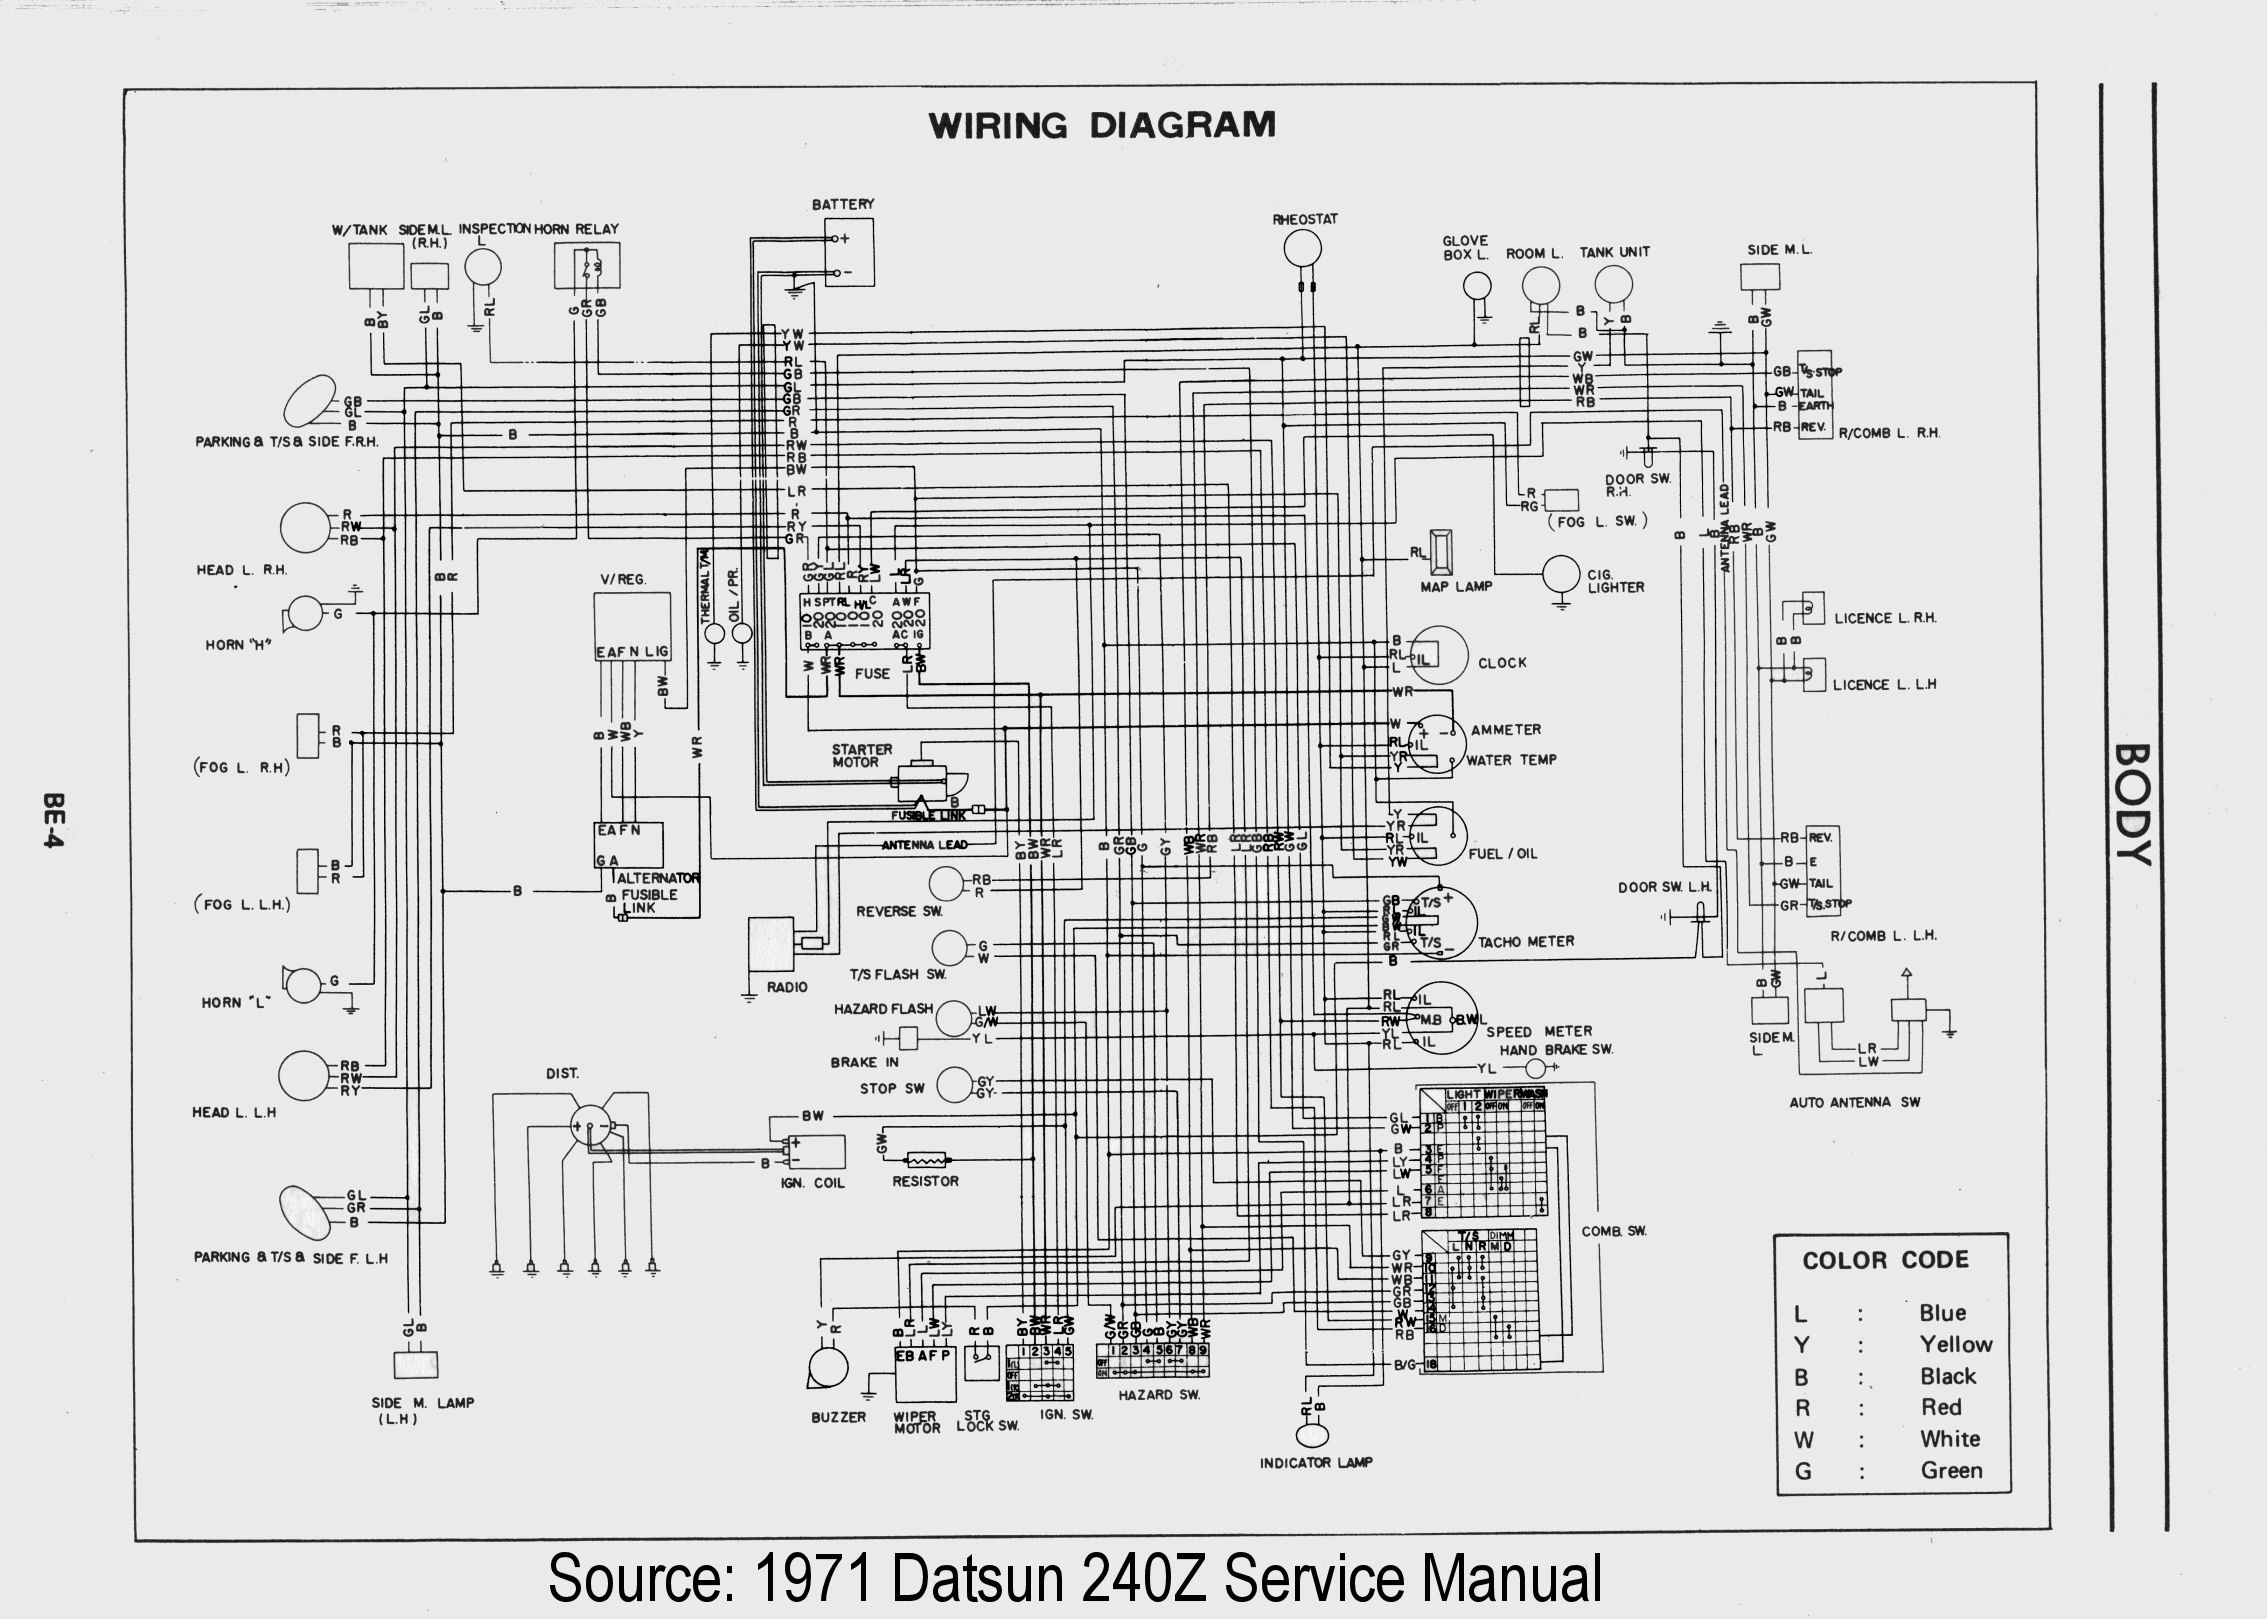 Wiring Diagram HiRes 2 generic wiring troubleshooting checklist woodworkerb Custom Automotive Wiring Harness Kits at fashall.co